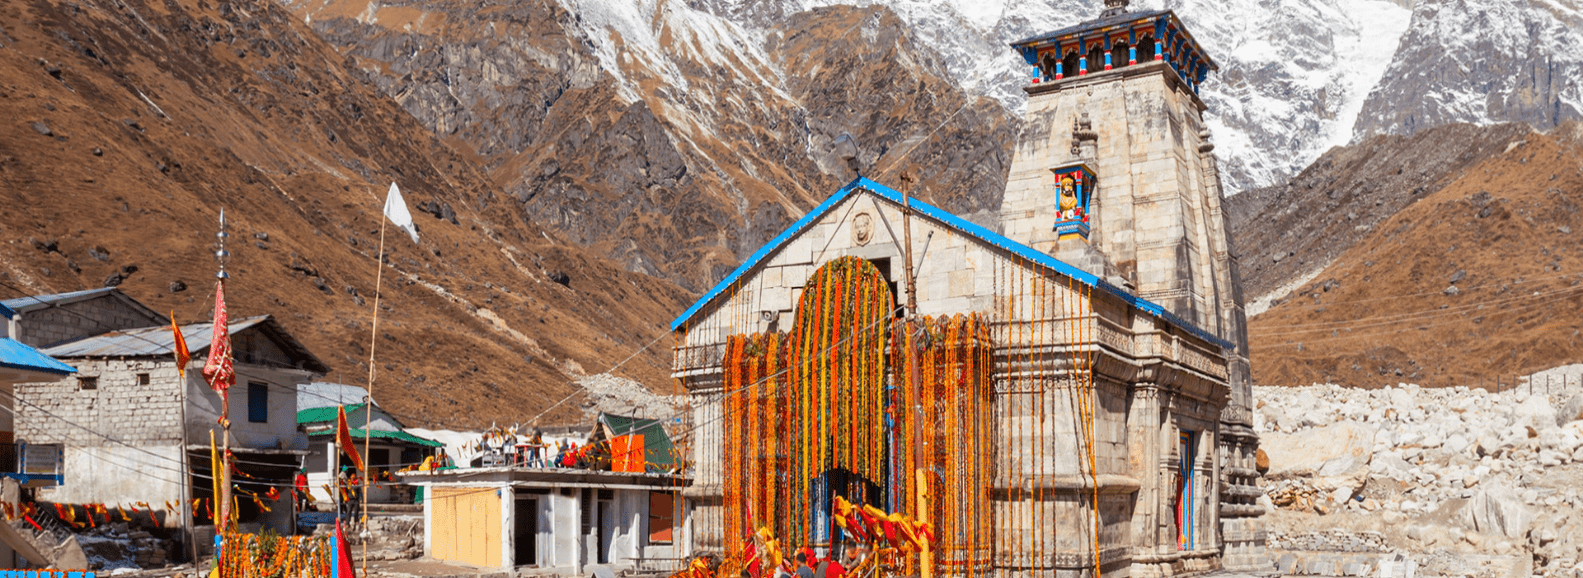 Kedarnath temple during Char Dham Yatra is one of the 12 Jyotirlingas in india and is a famous Lord Shiva temple